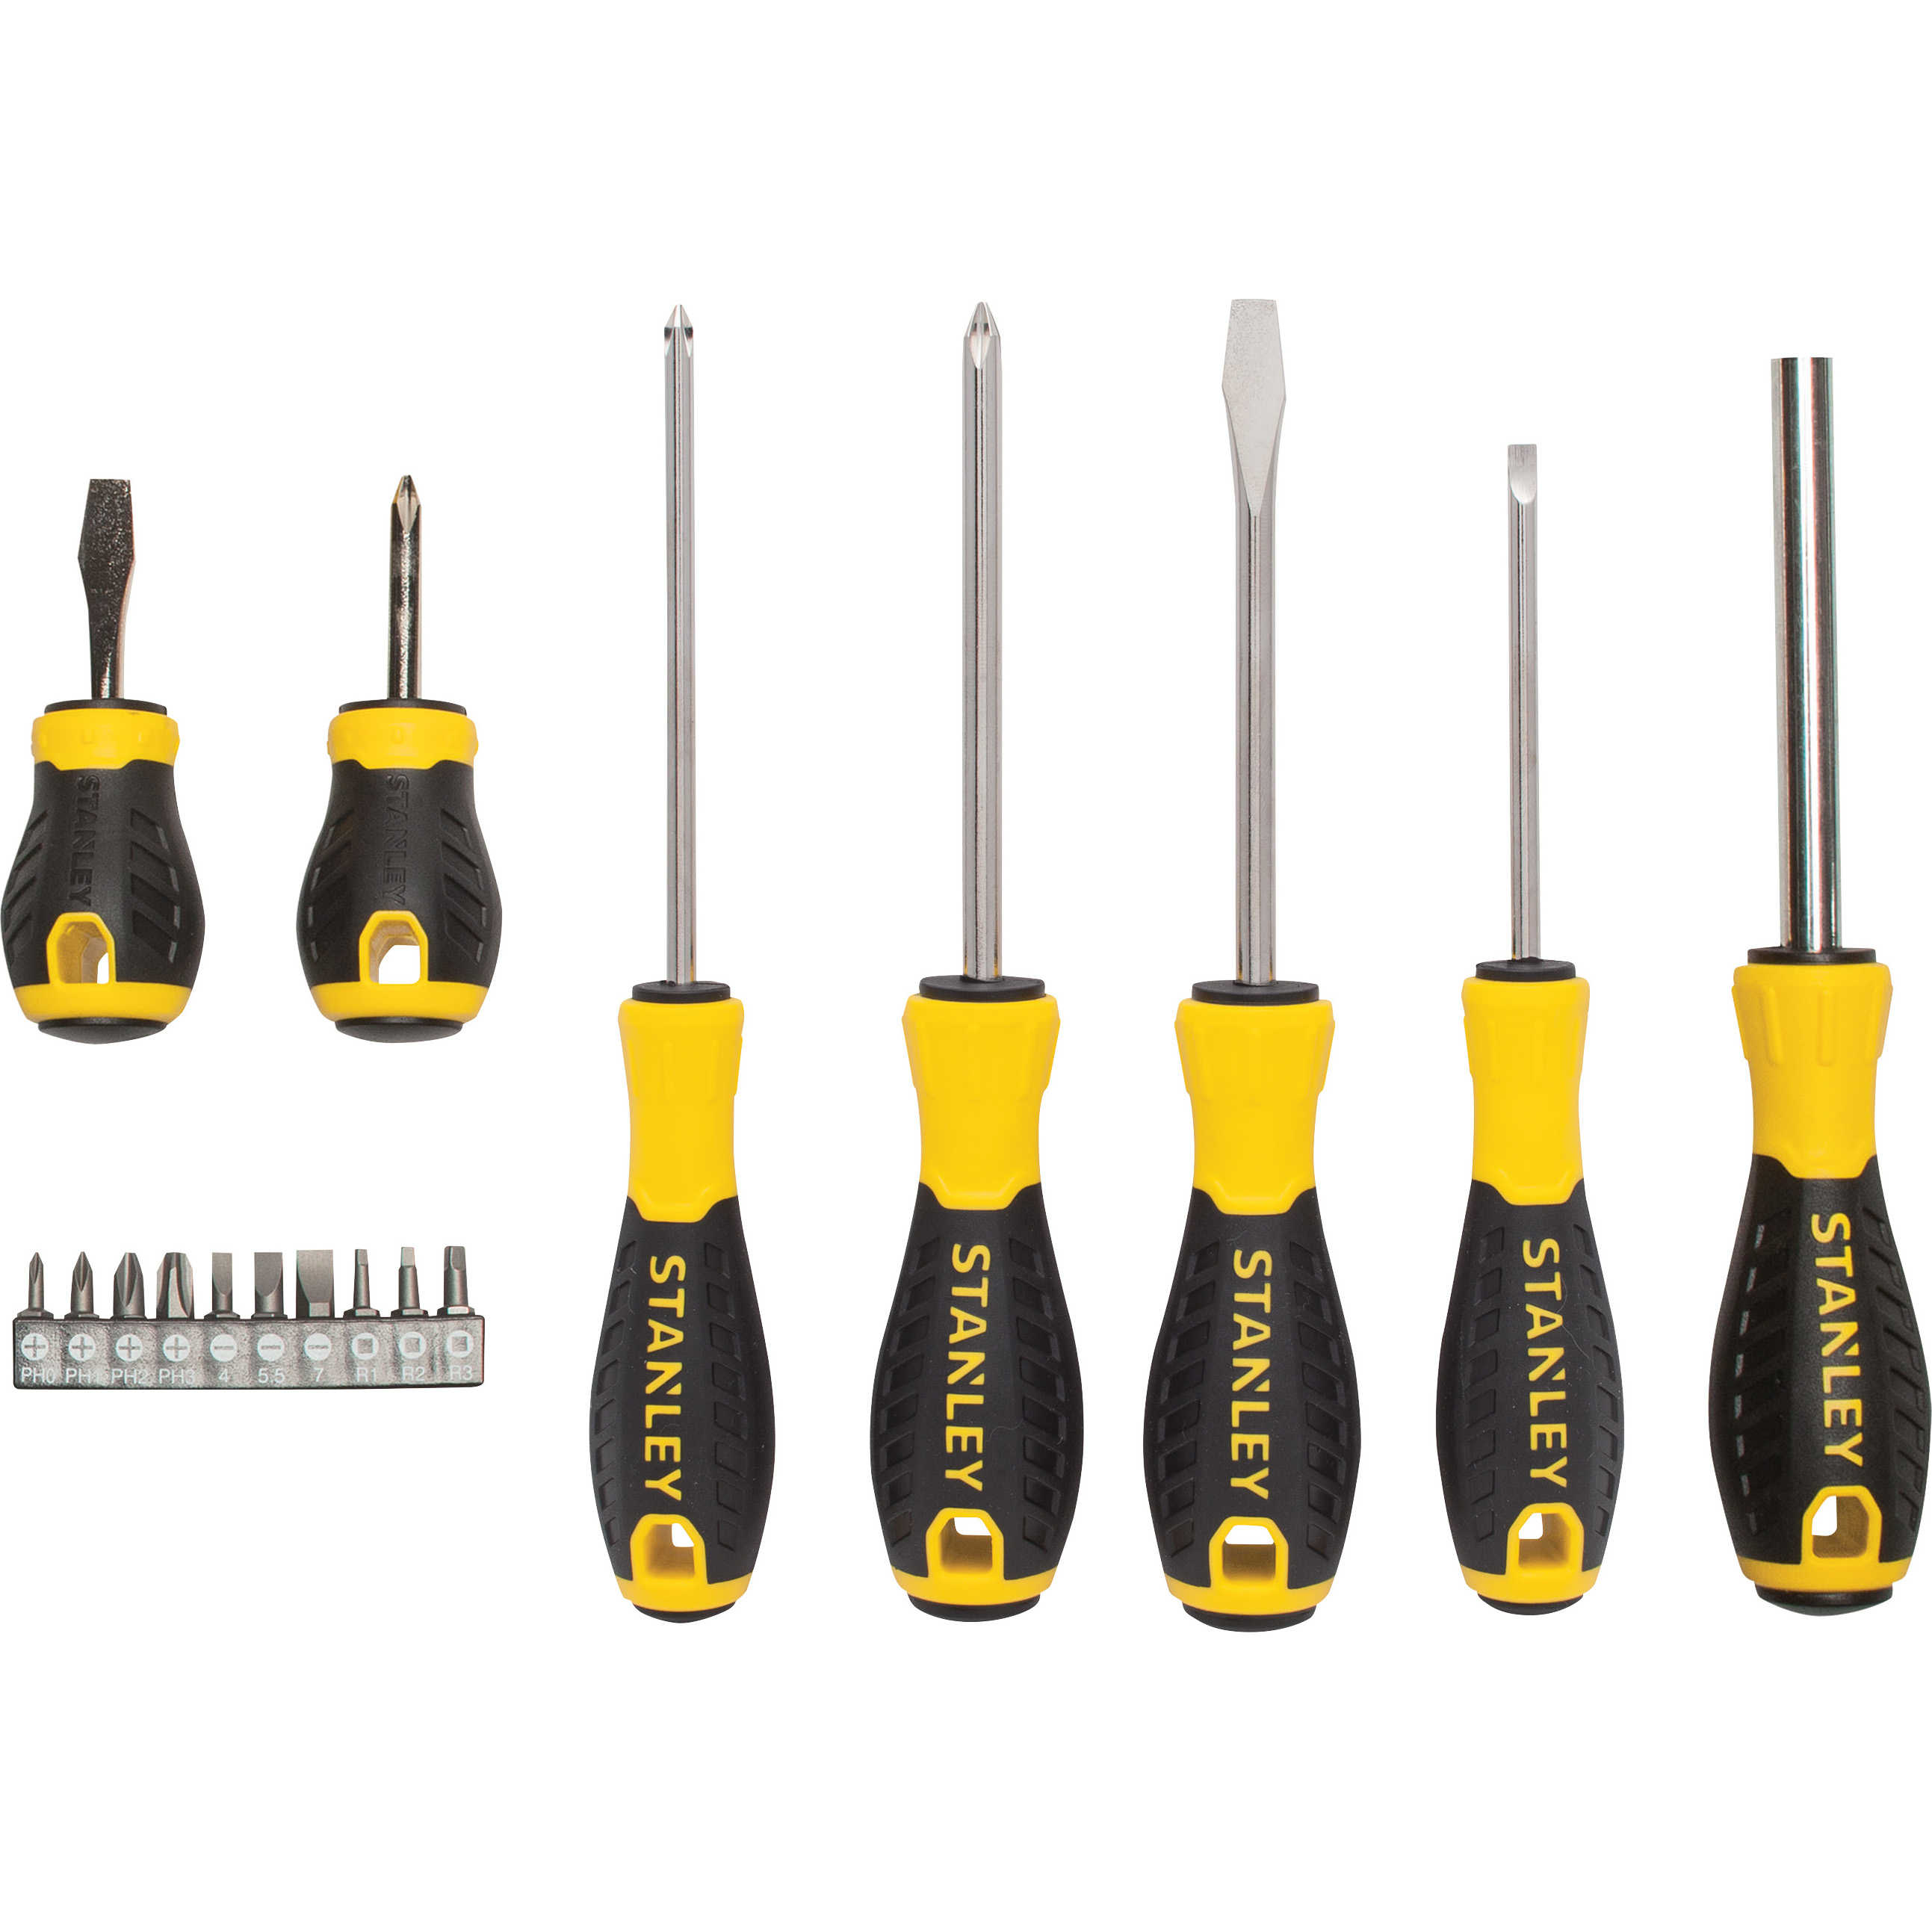 Stanley STHT66598 17 Piece Control Grip Screwdriver Set